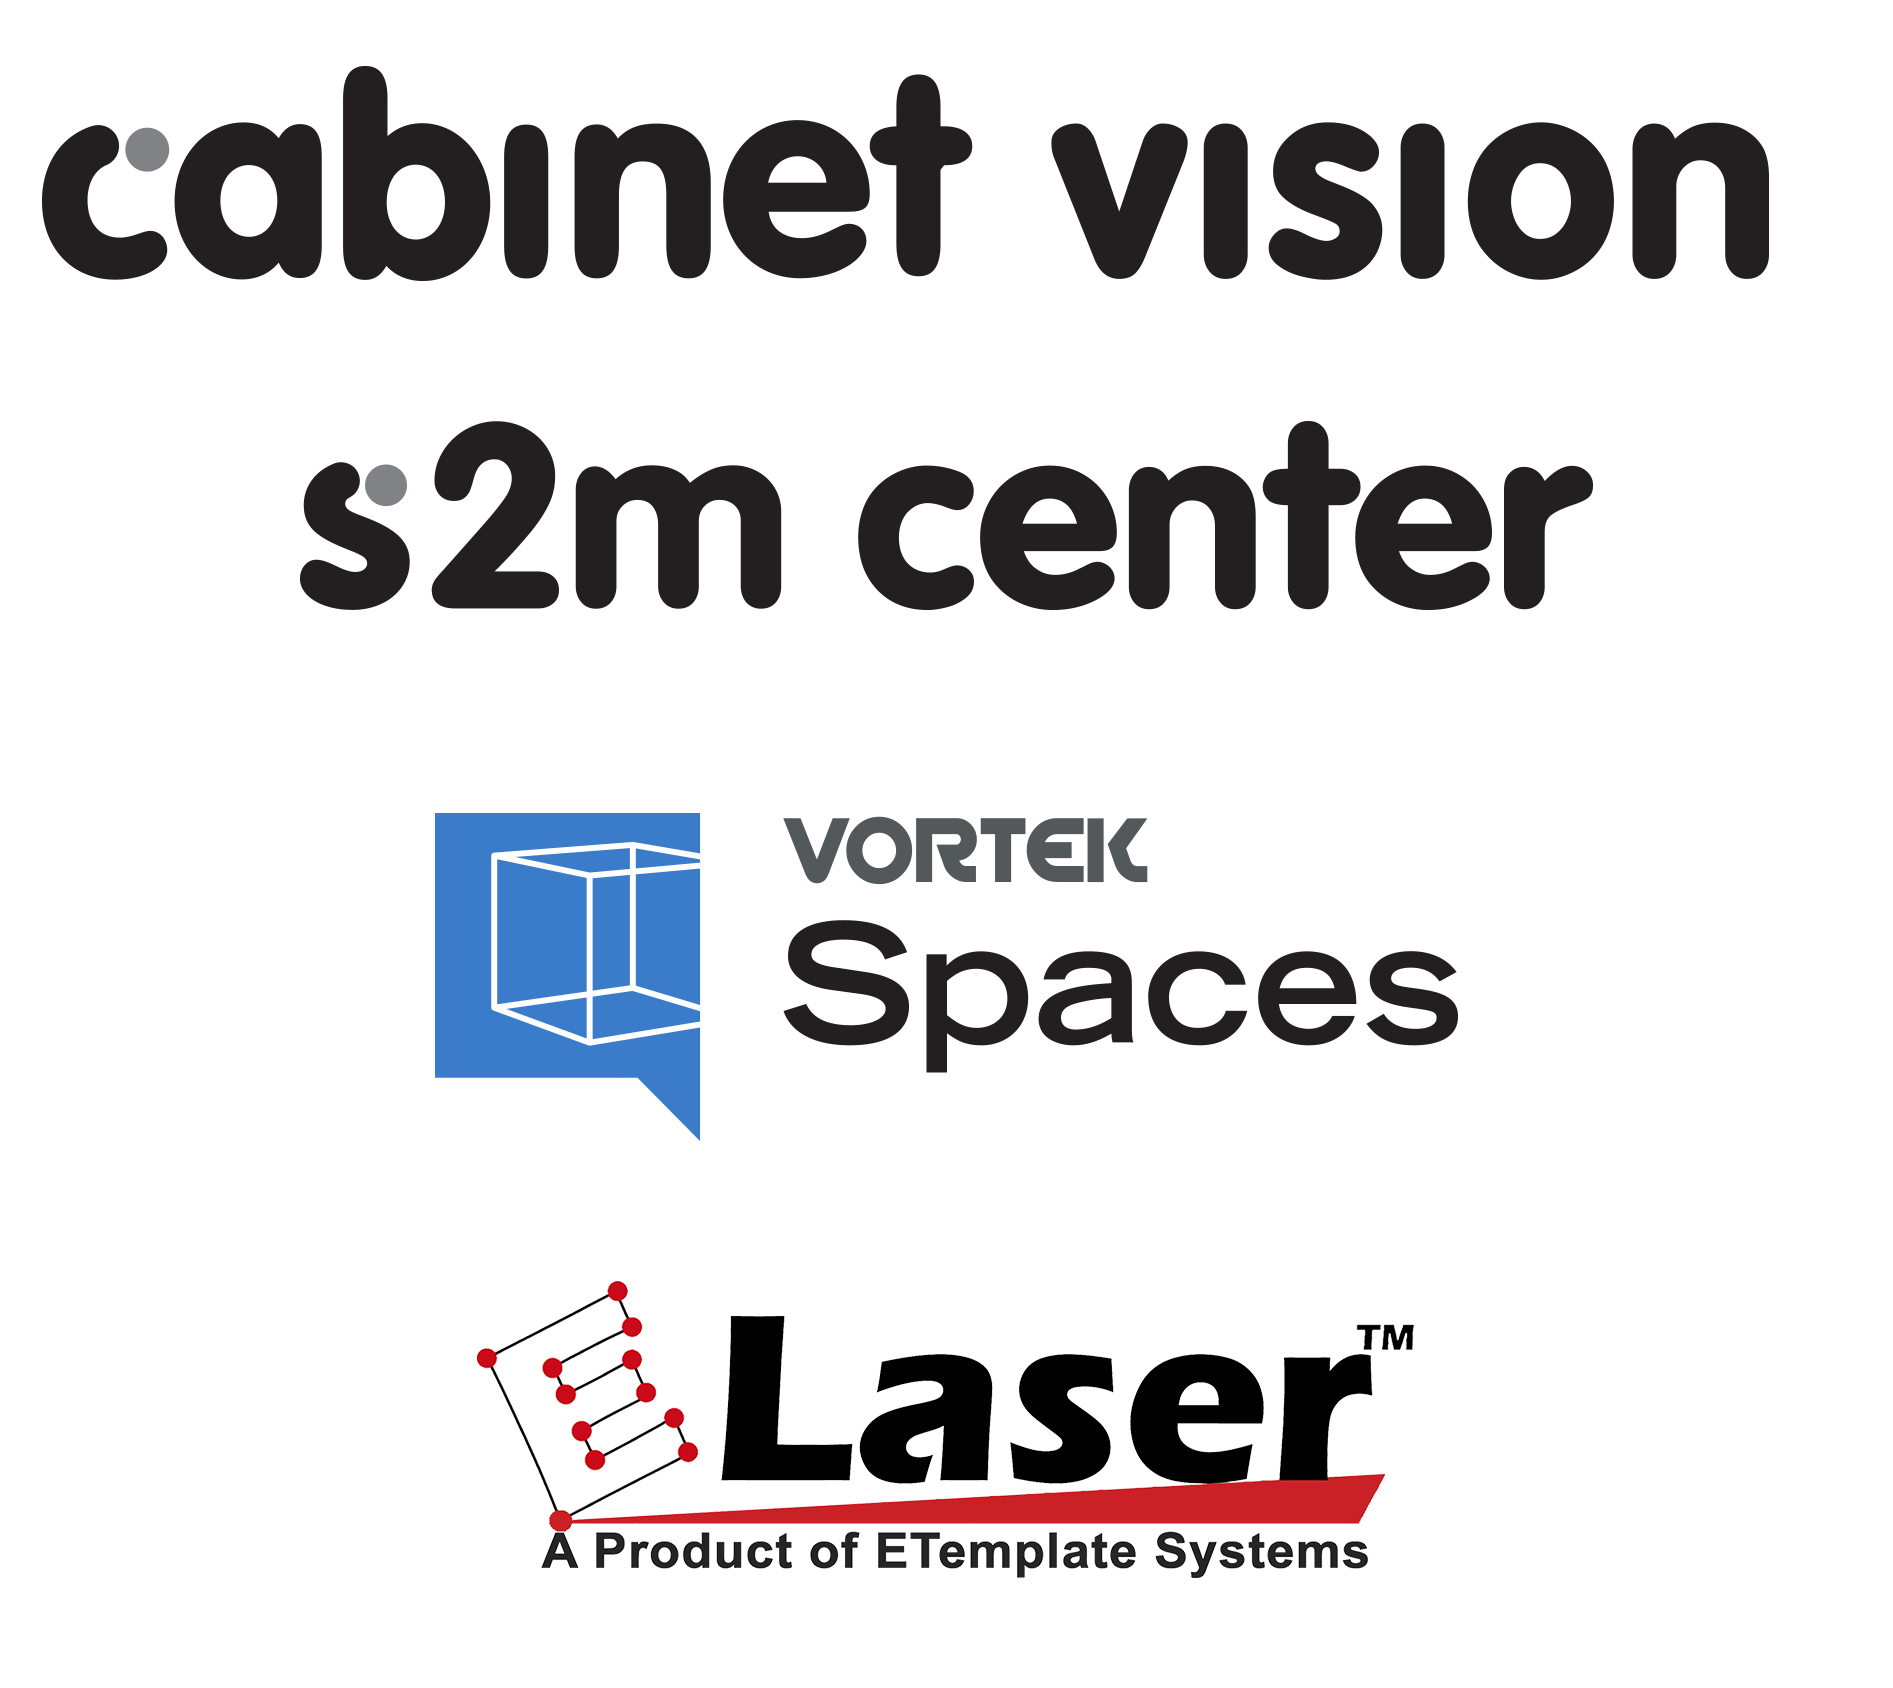 Cabinet Vision Engineering Software For Cabinet And